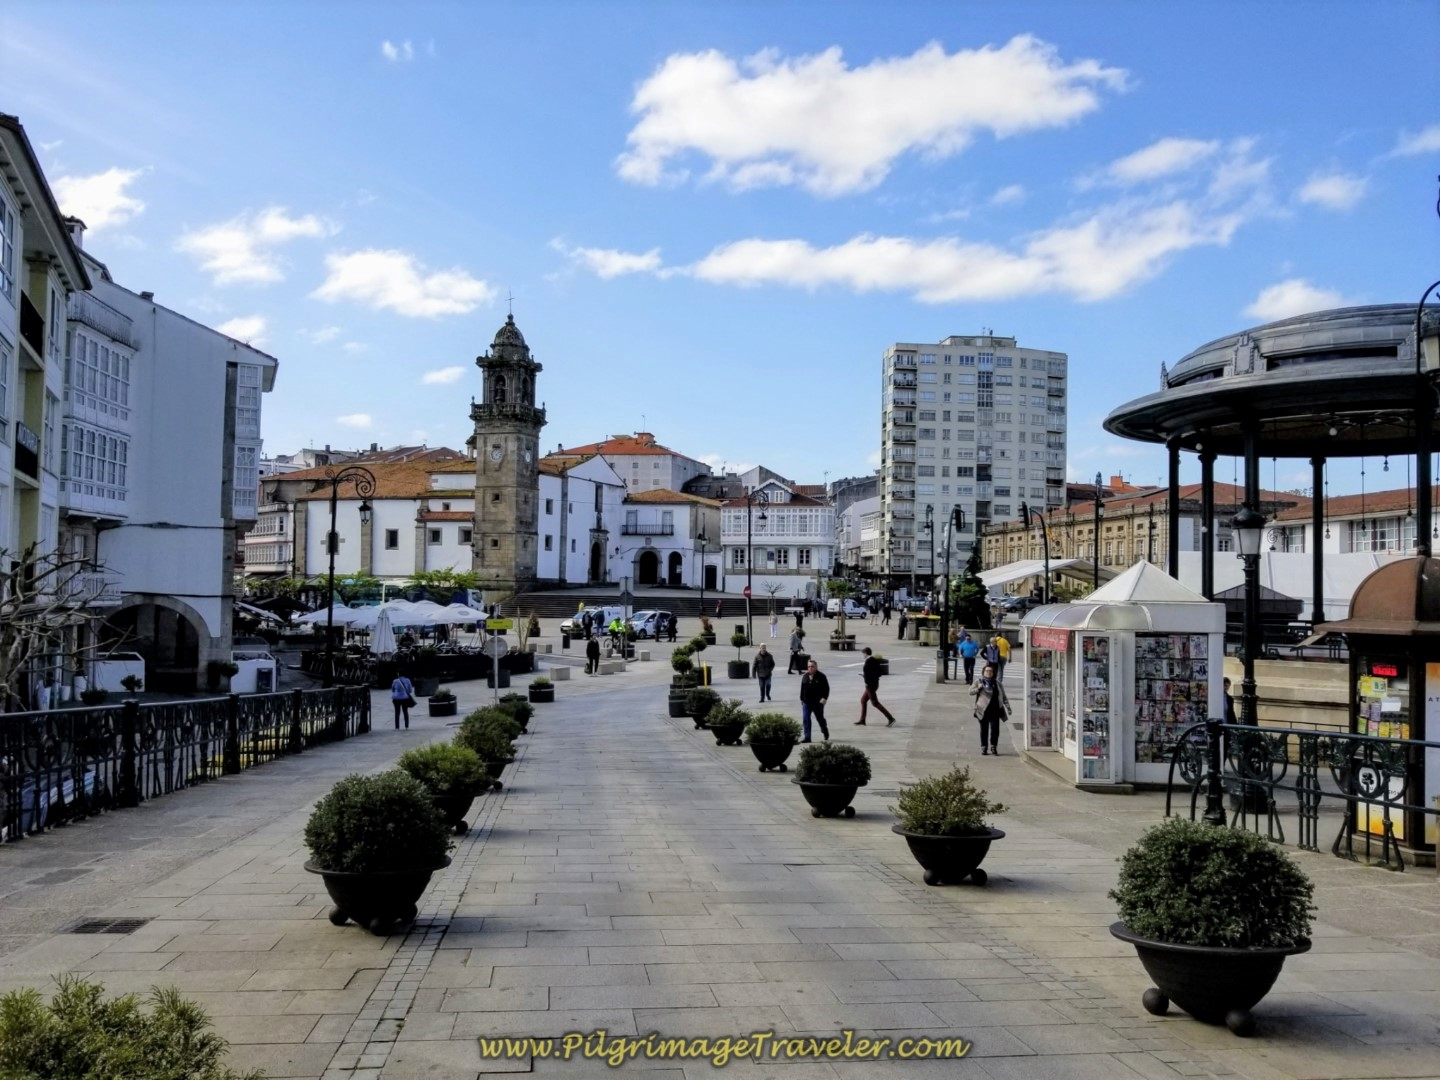 Walk on the Porta do Vila to the Central Square of Betanzos on day four of the English Way